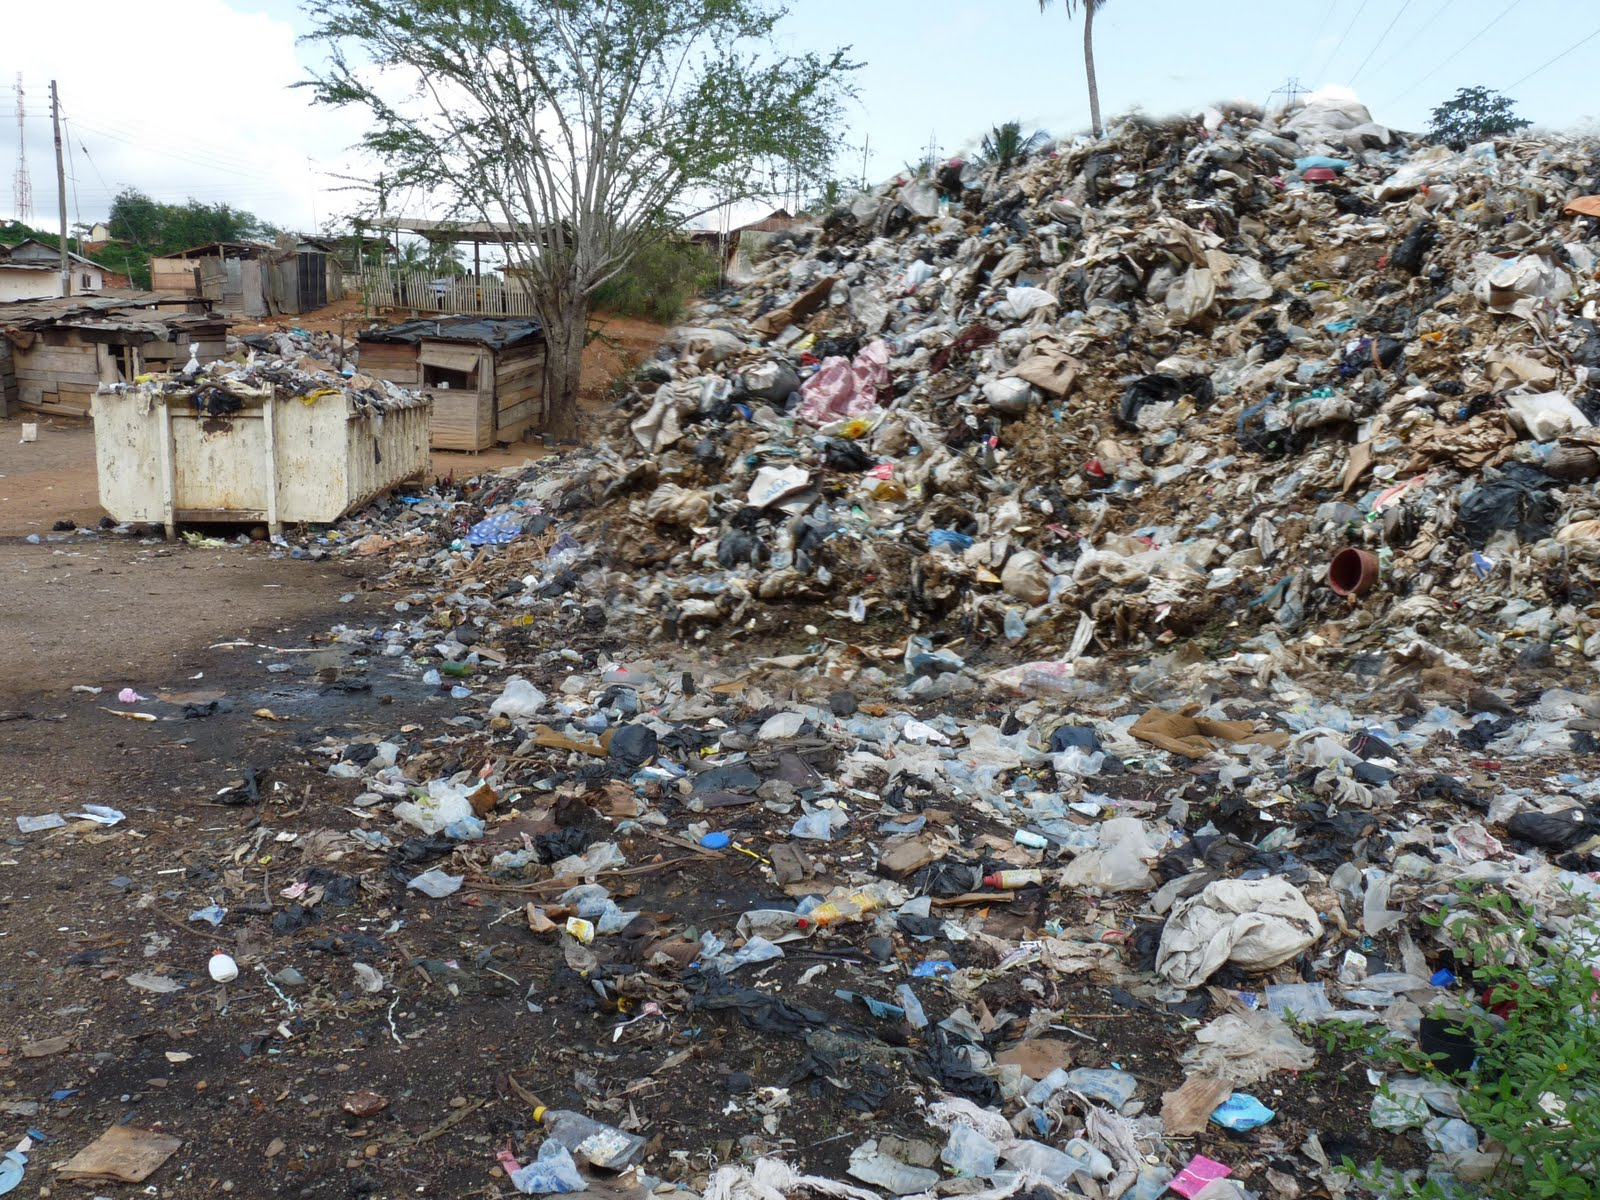 waste management in urban areas Management in urban areas plays a particularly important role, given that waste generated from urban areas are often exported out of the region for processing and treatment, and waste.